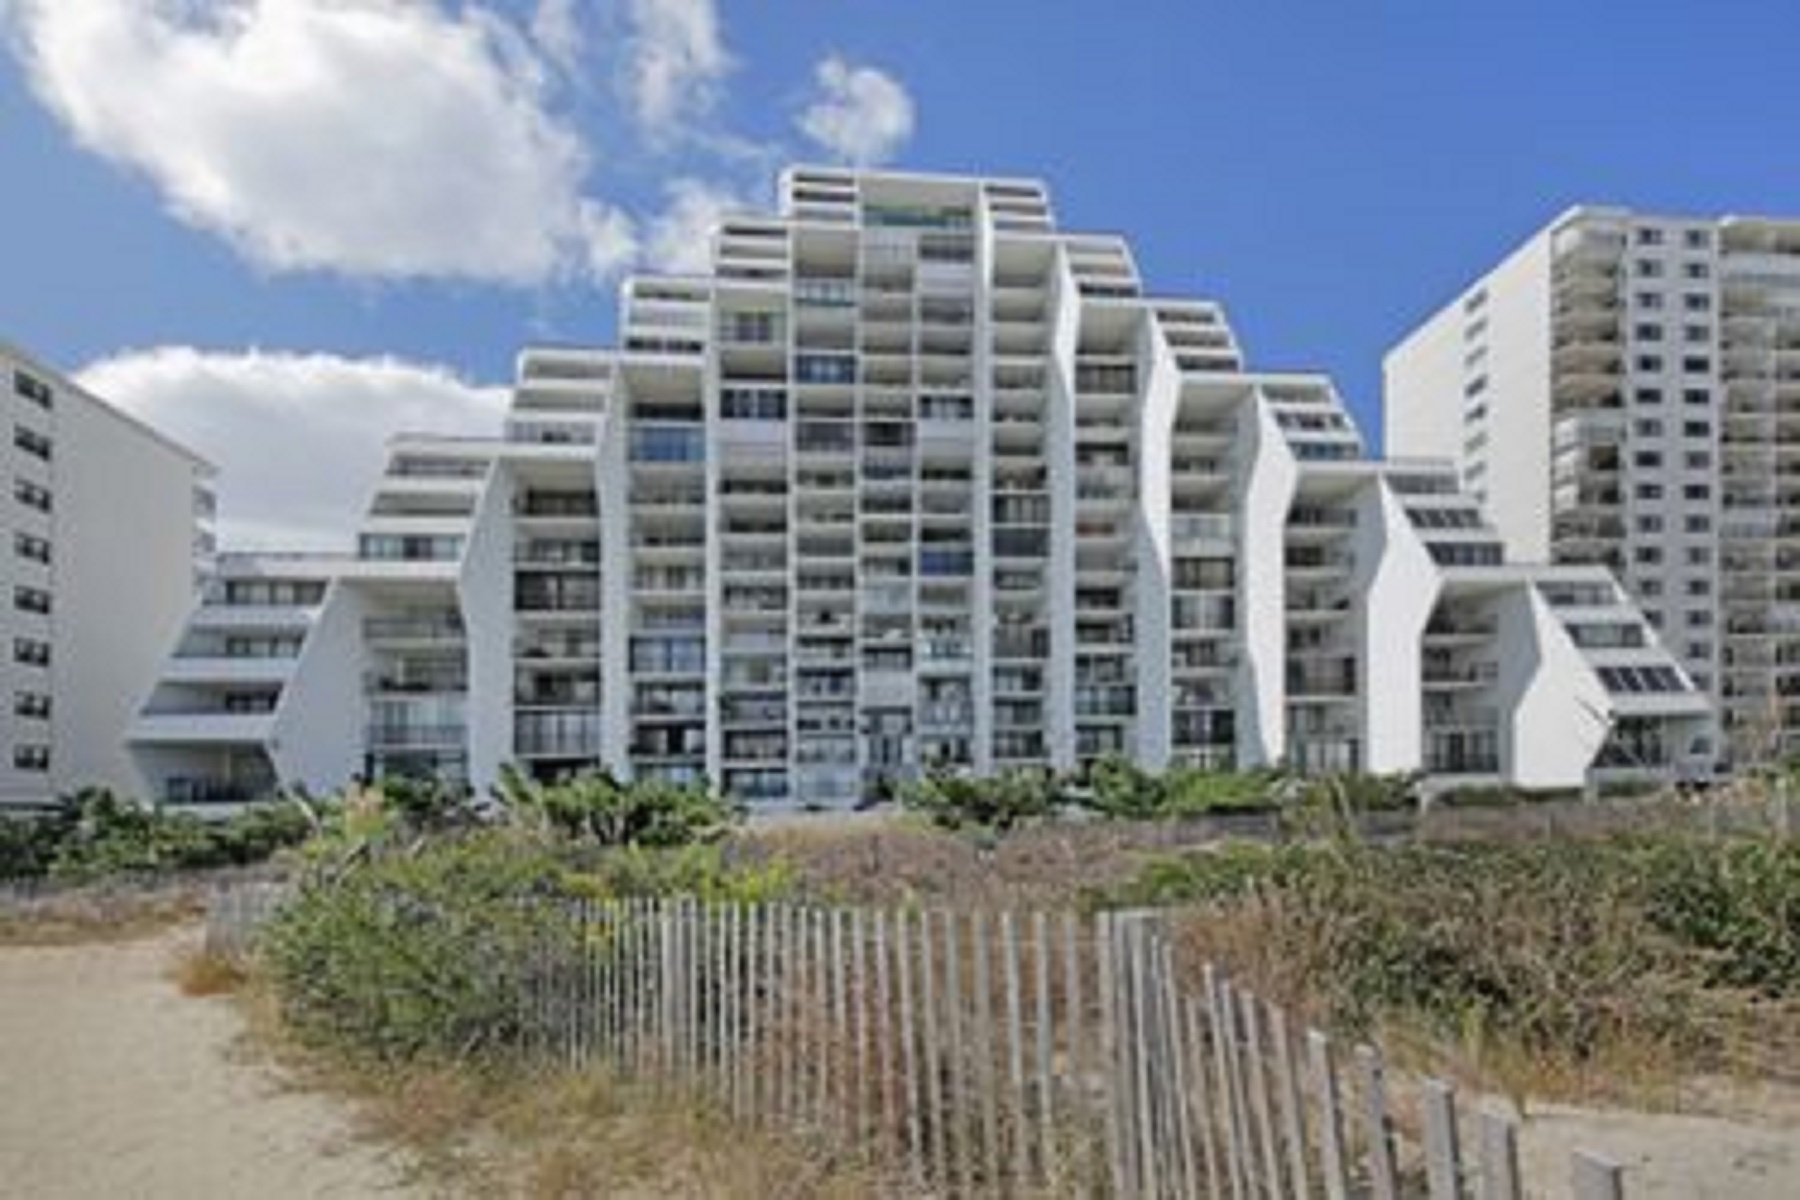 Appartement voor Verkoop een t 9500 Coastal Highway Pths, Ocean City, Maryland 9500 Coastal Highway Pths Ocean City, Maryland 2184 Verenigde Staten